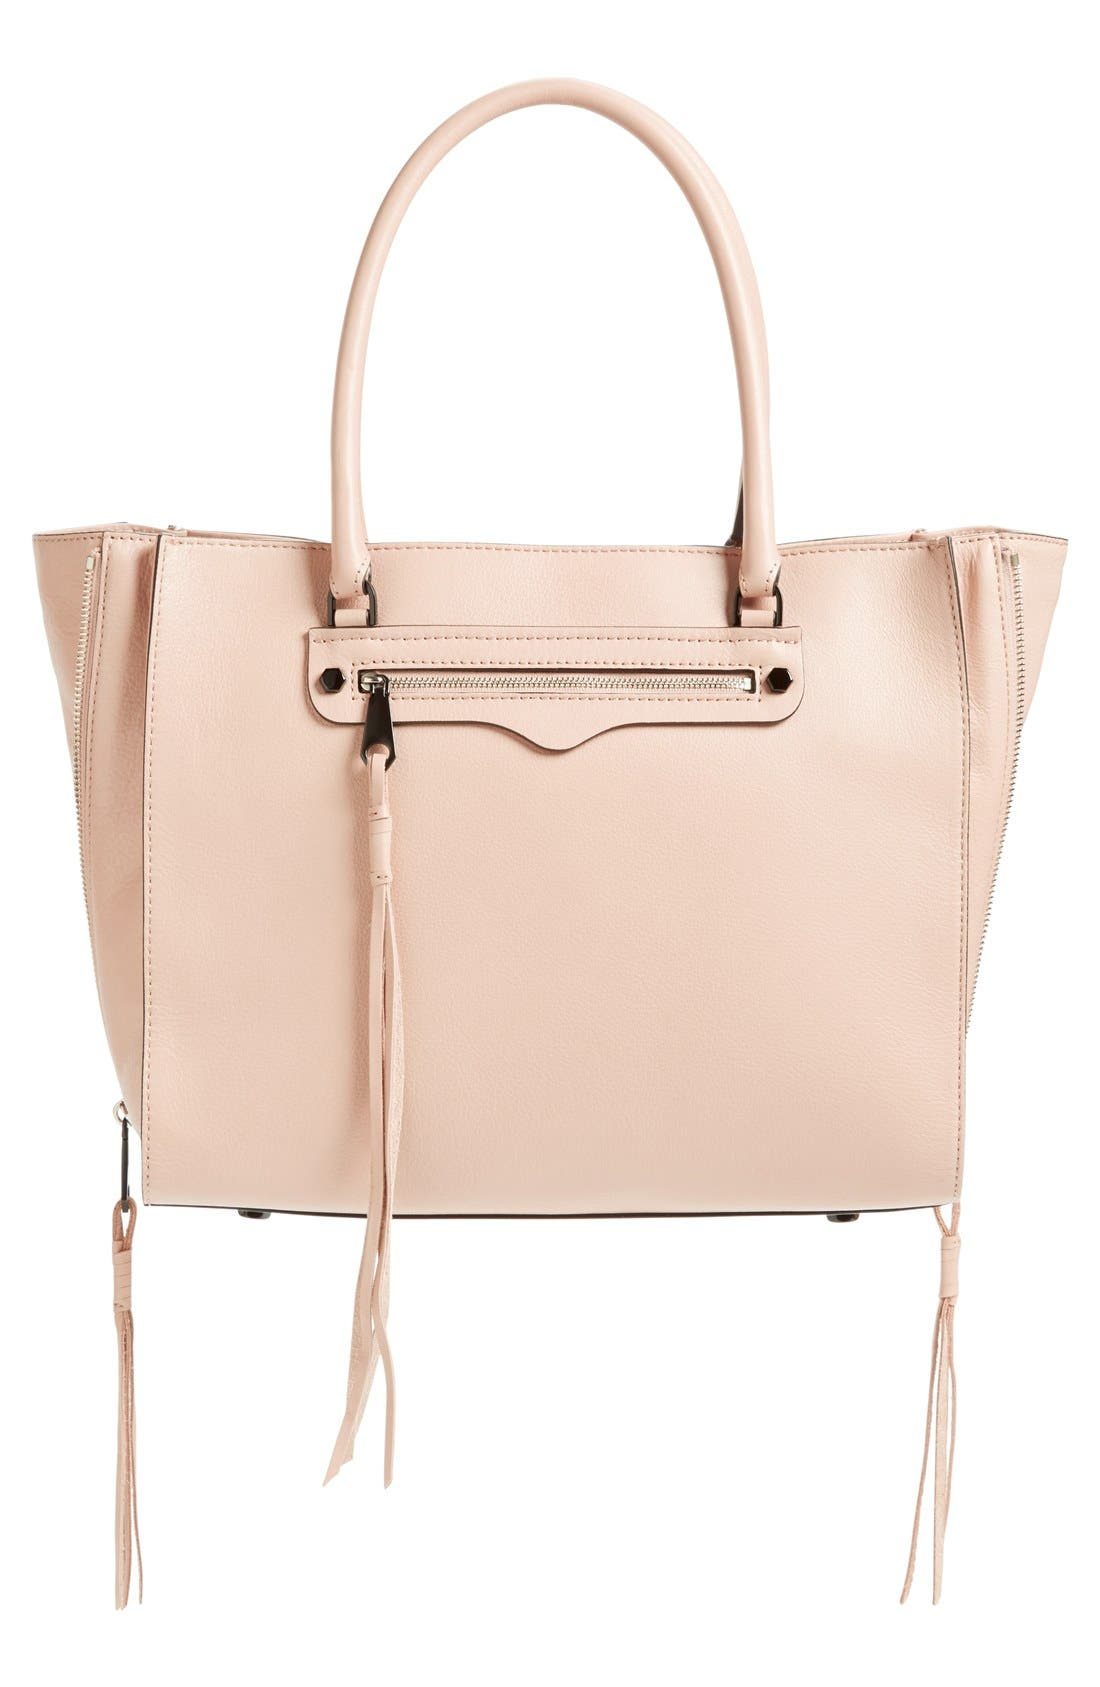 Alternate Image 1 Selected - Rebecca Minkoff 'Side Zip Regan' Tote (Nordstrom Exclusive)